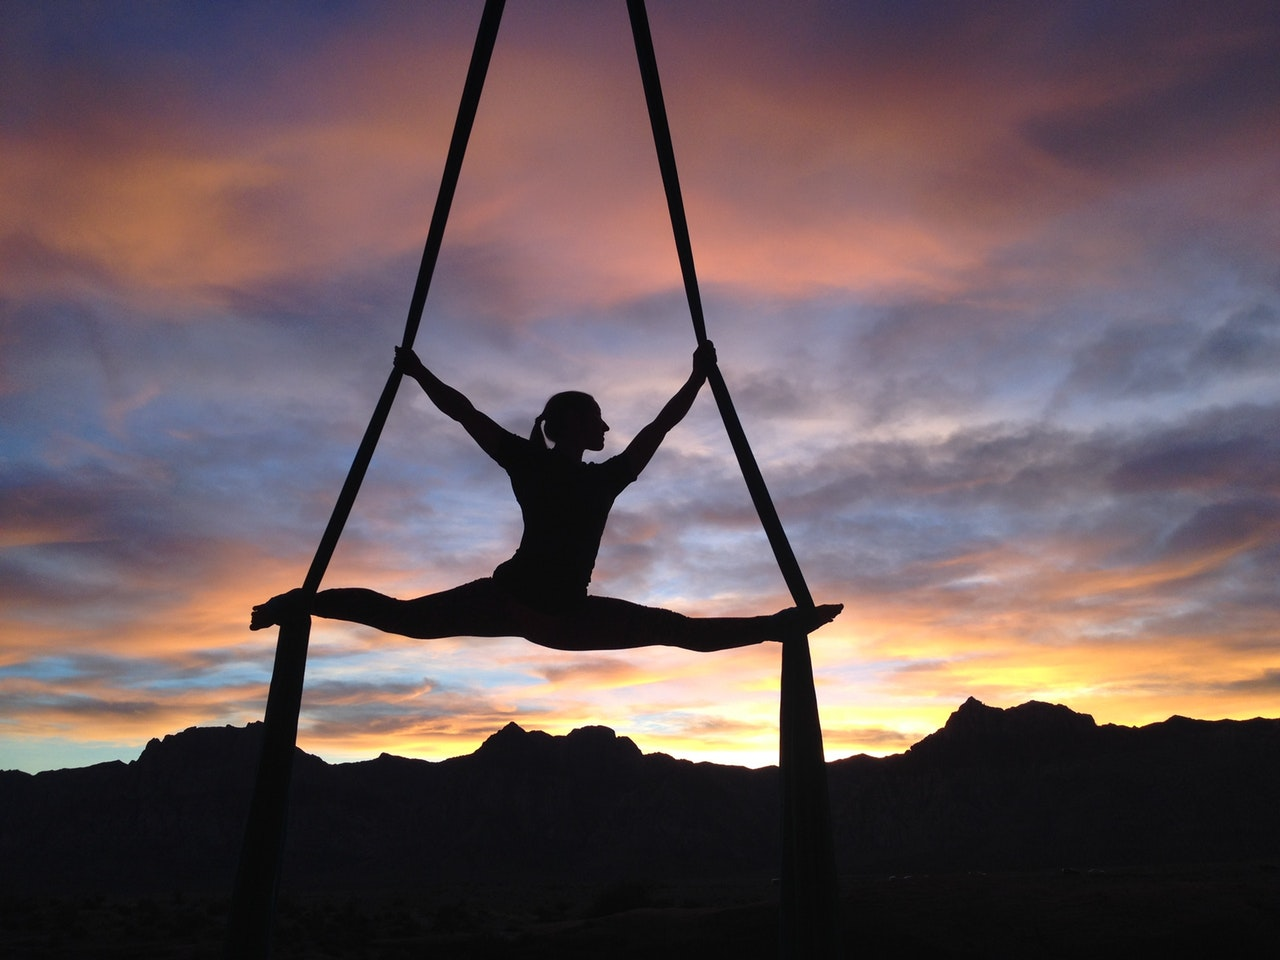 silhouette-aerialist-female-woman.jpg